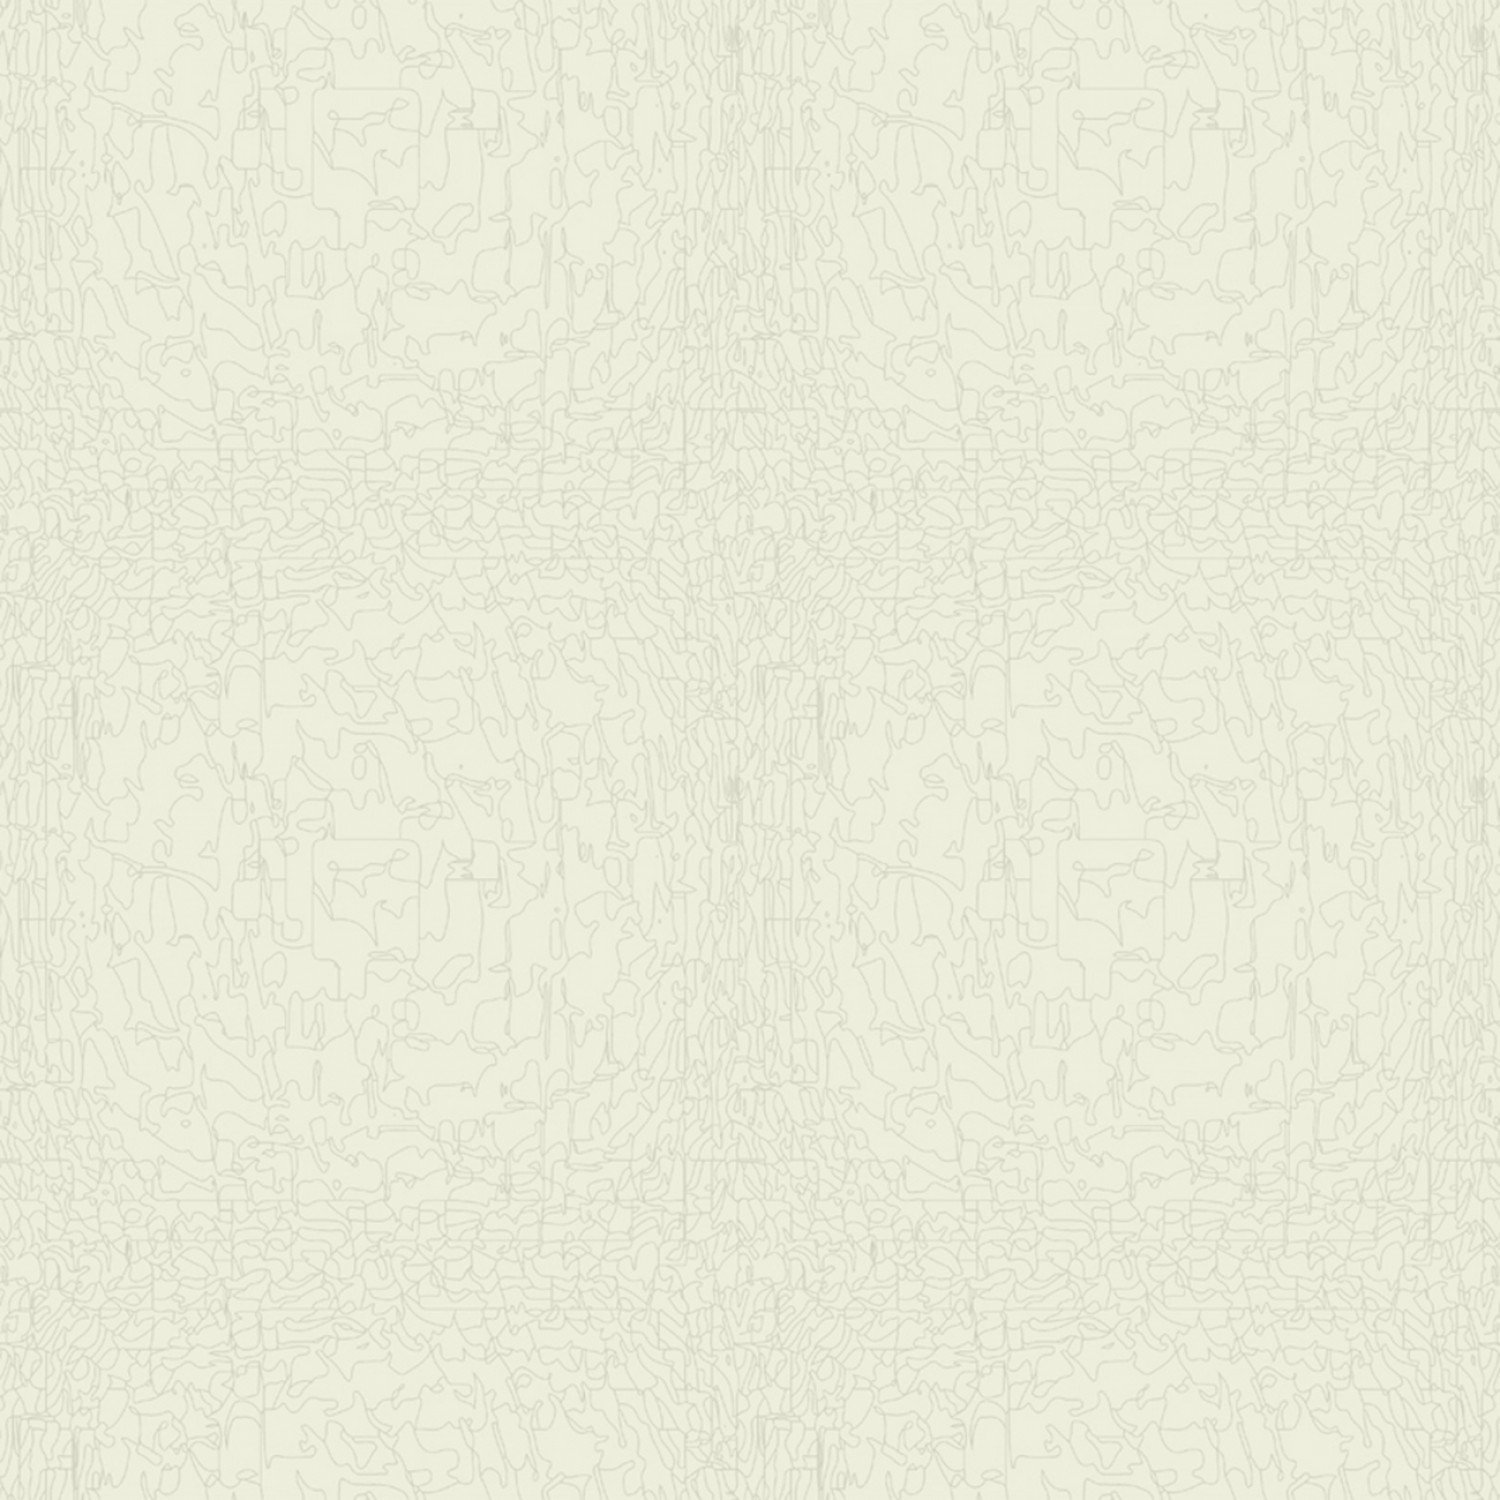 51577 6 Noble Paint Pottery by Dale Allen-Rowse for Windham Fabrics. 100% cotton 43 wide